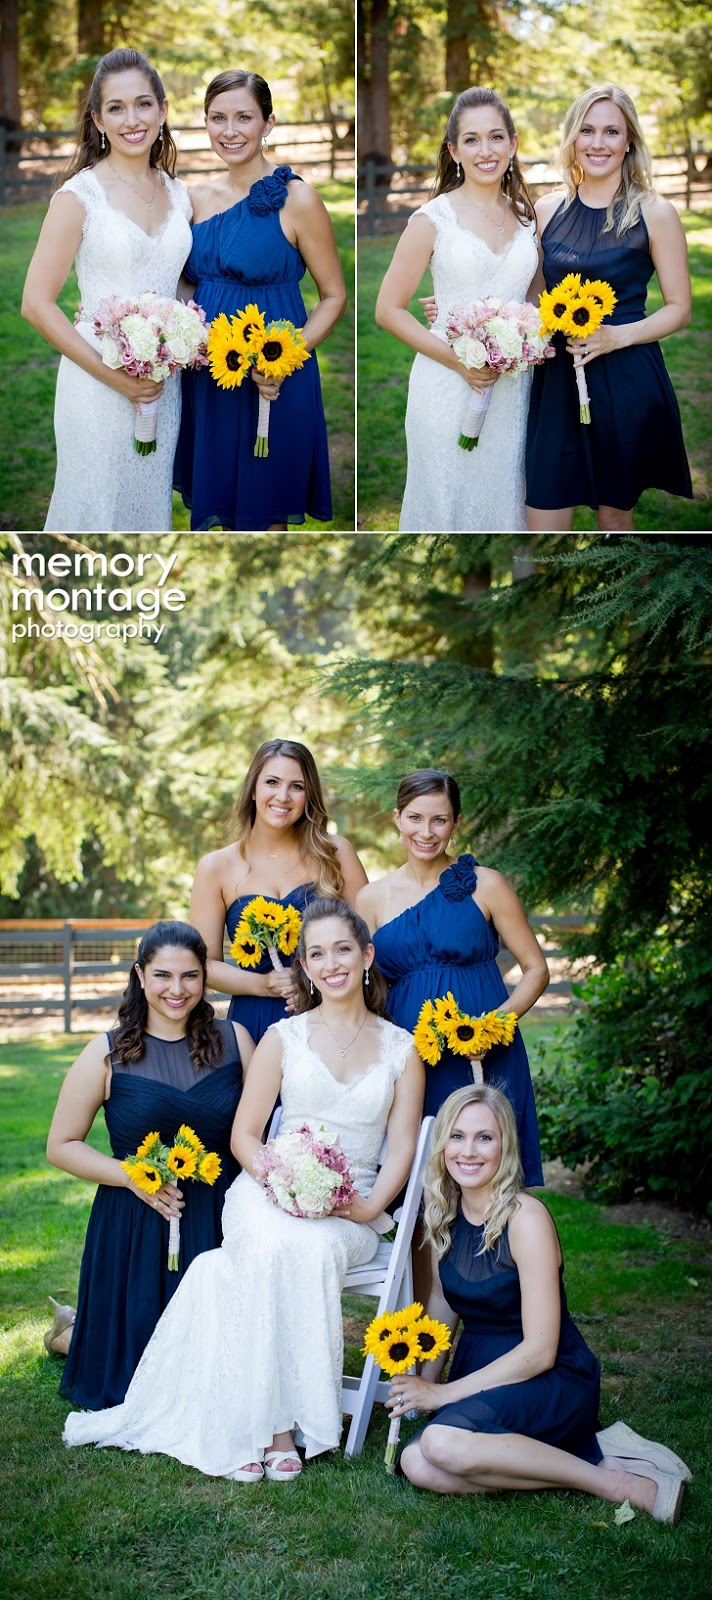 Issaquah Wedding Photographers, Seattle Wedding Photographers, Issaquah Wedding Photography, Seattle Wedding Photography, Navy blue, light pink, cream wedding, Memory Montage Photography, www.memorymp.com, Mystique Ranch